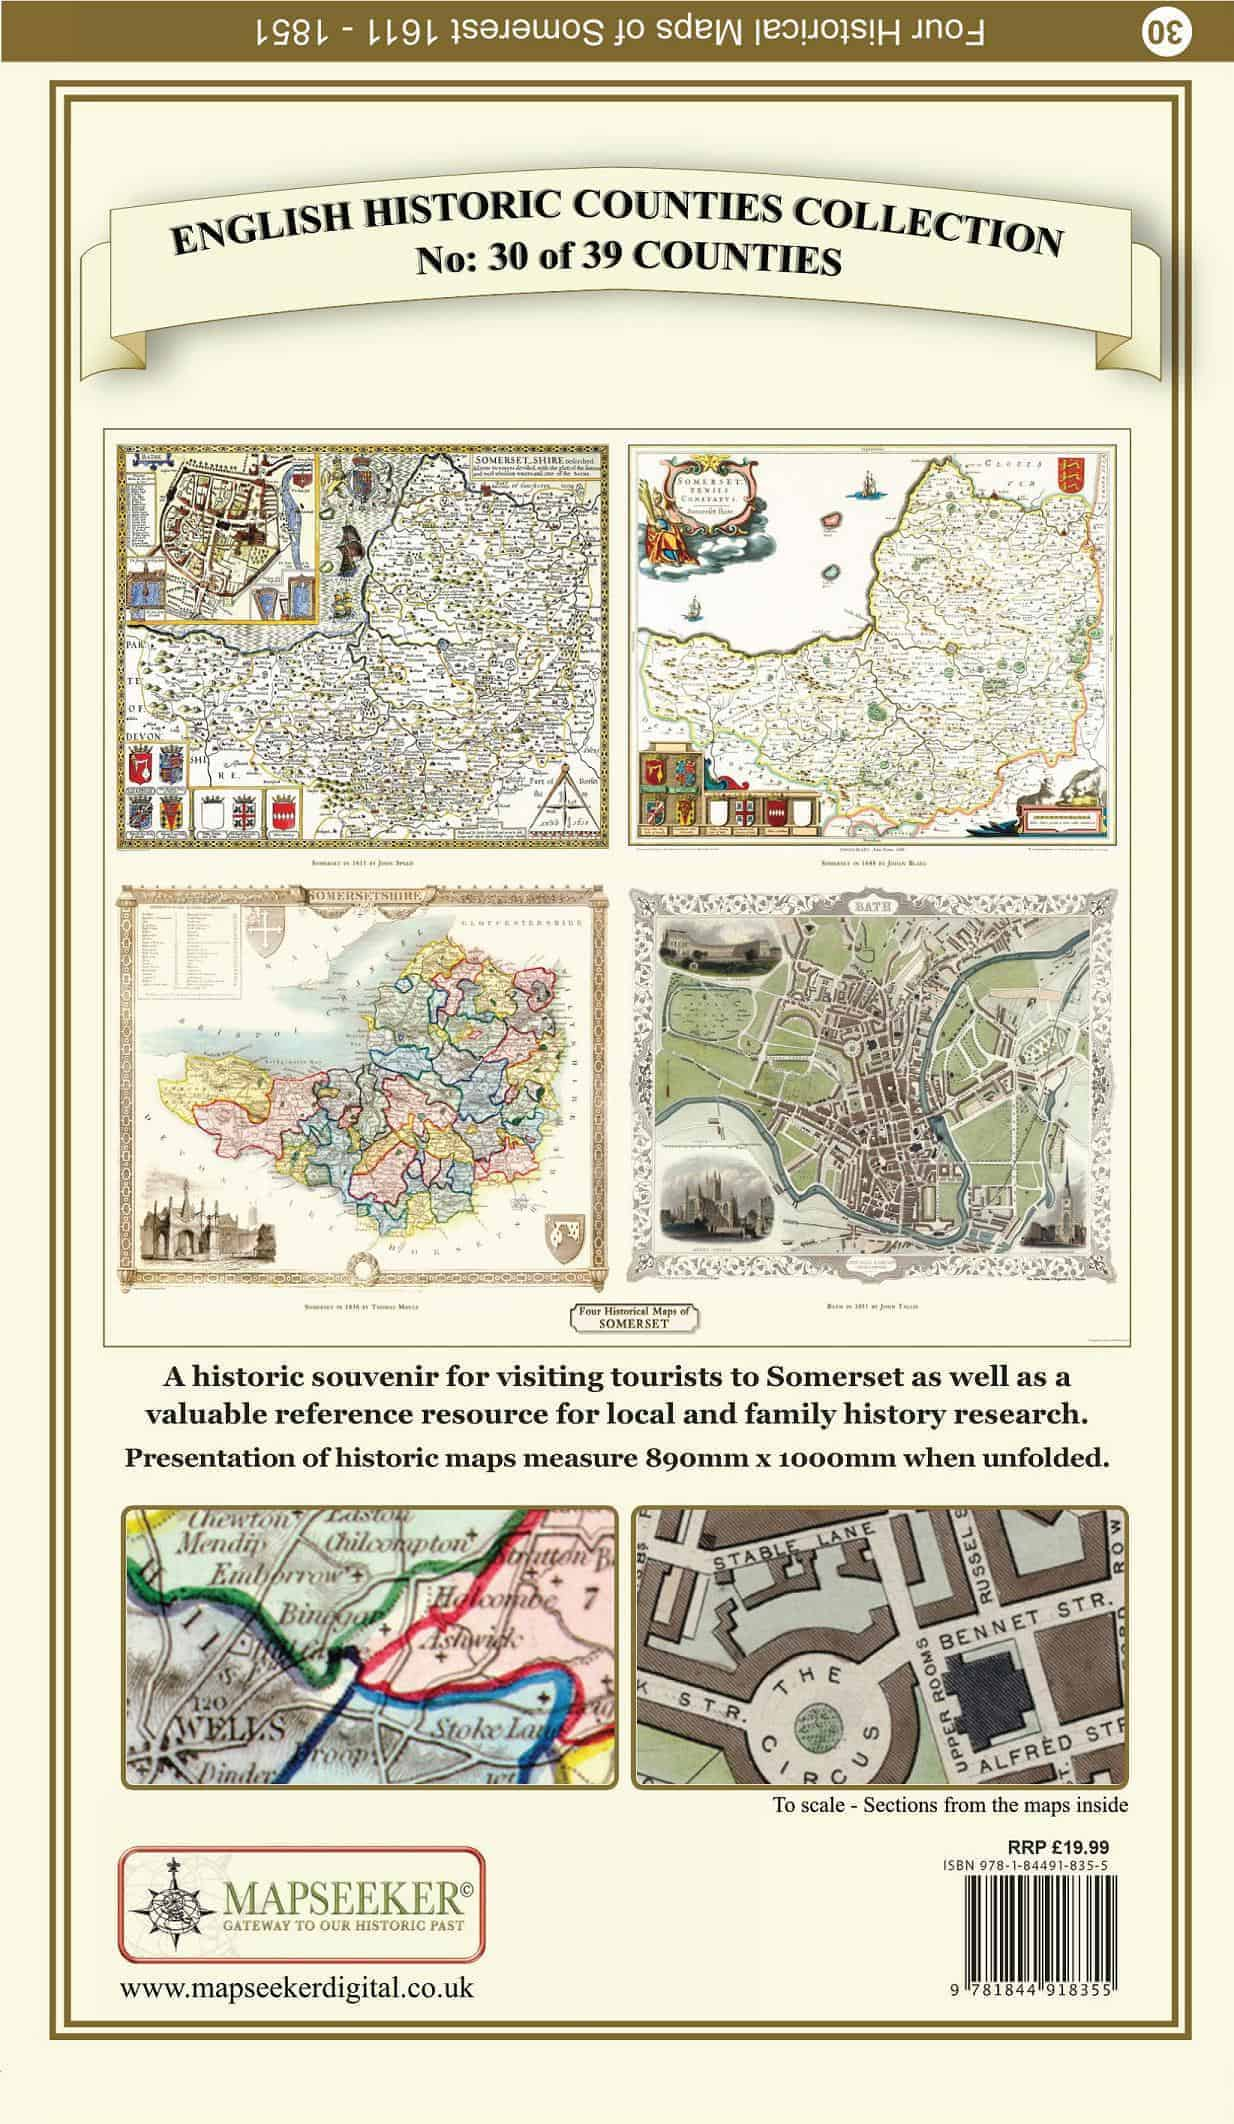 Collection Of Four Historic Maps Of Somersetshire - Mapseeker Digital